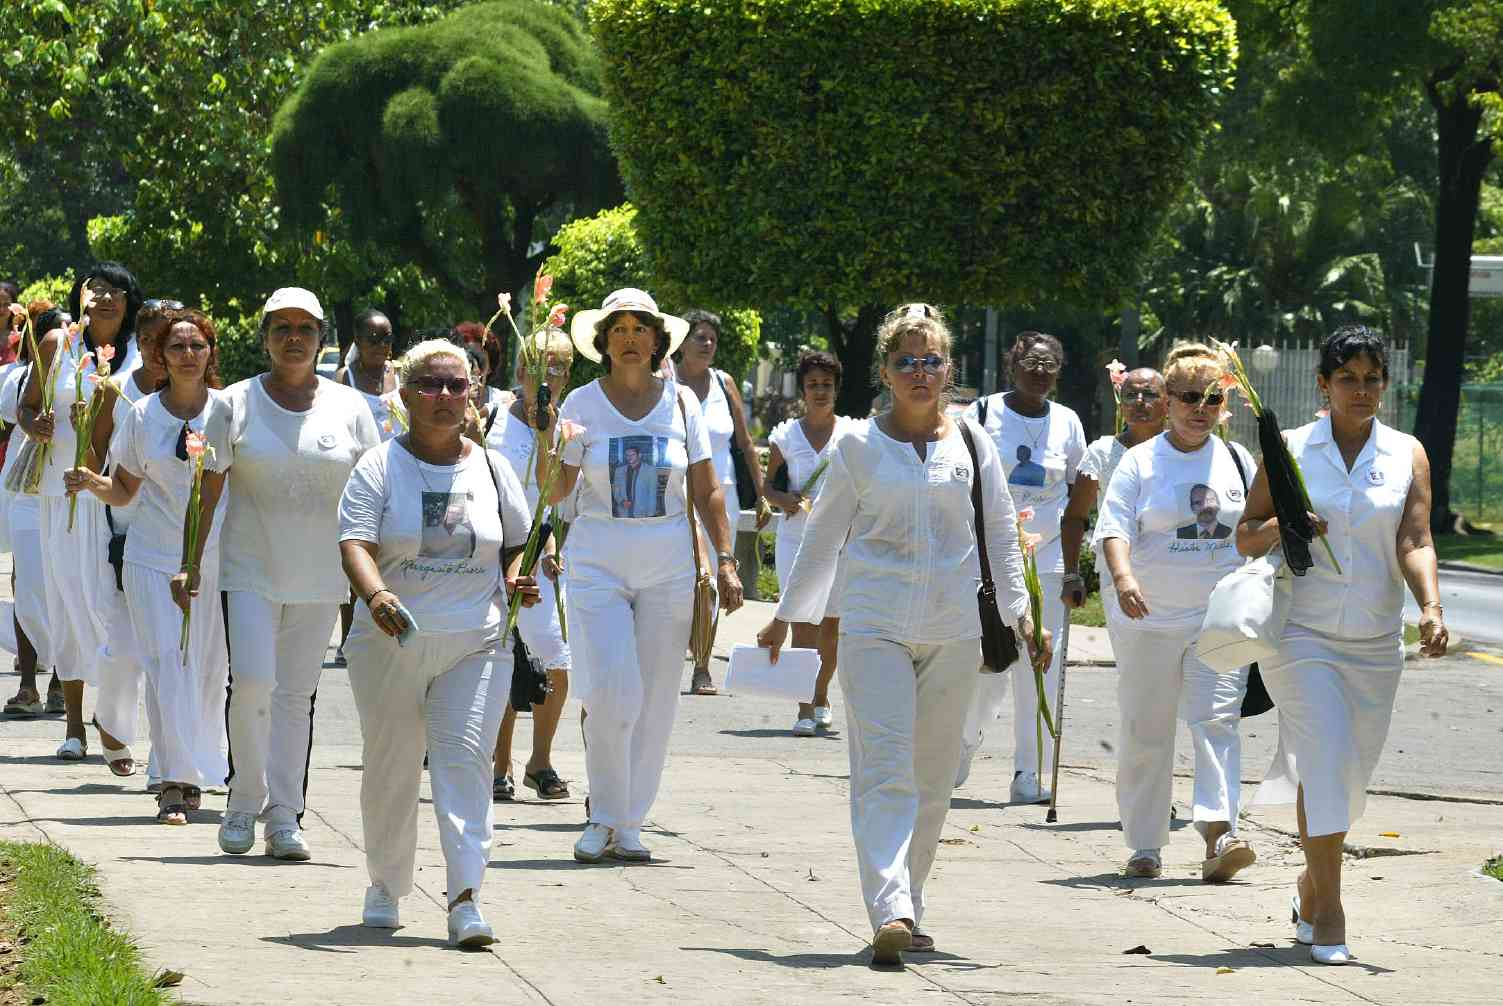 CUBA WIVES OF PRISONERS